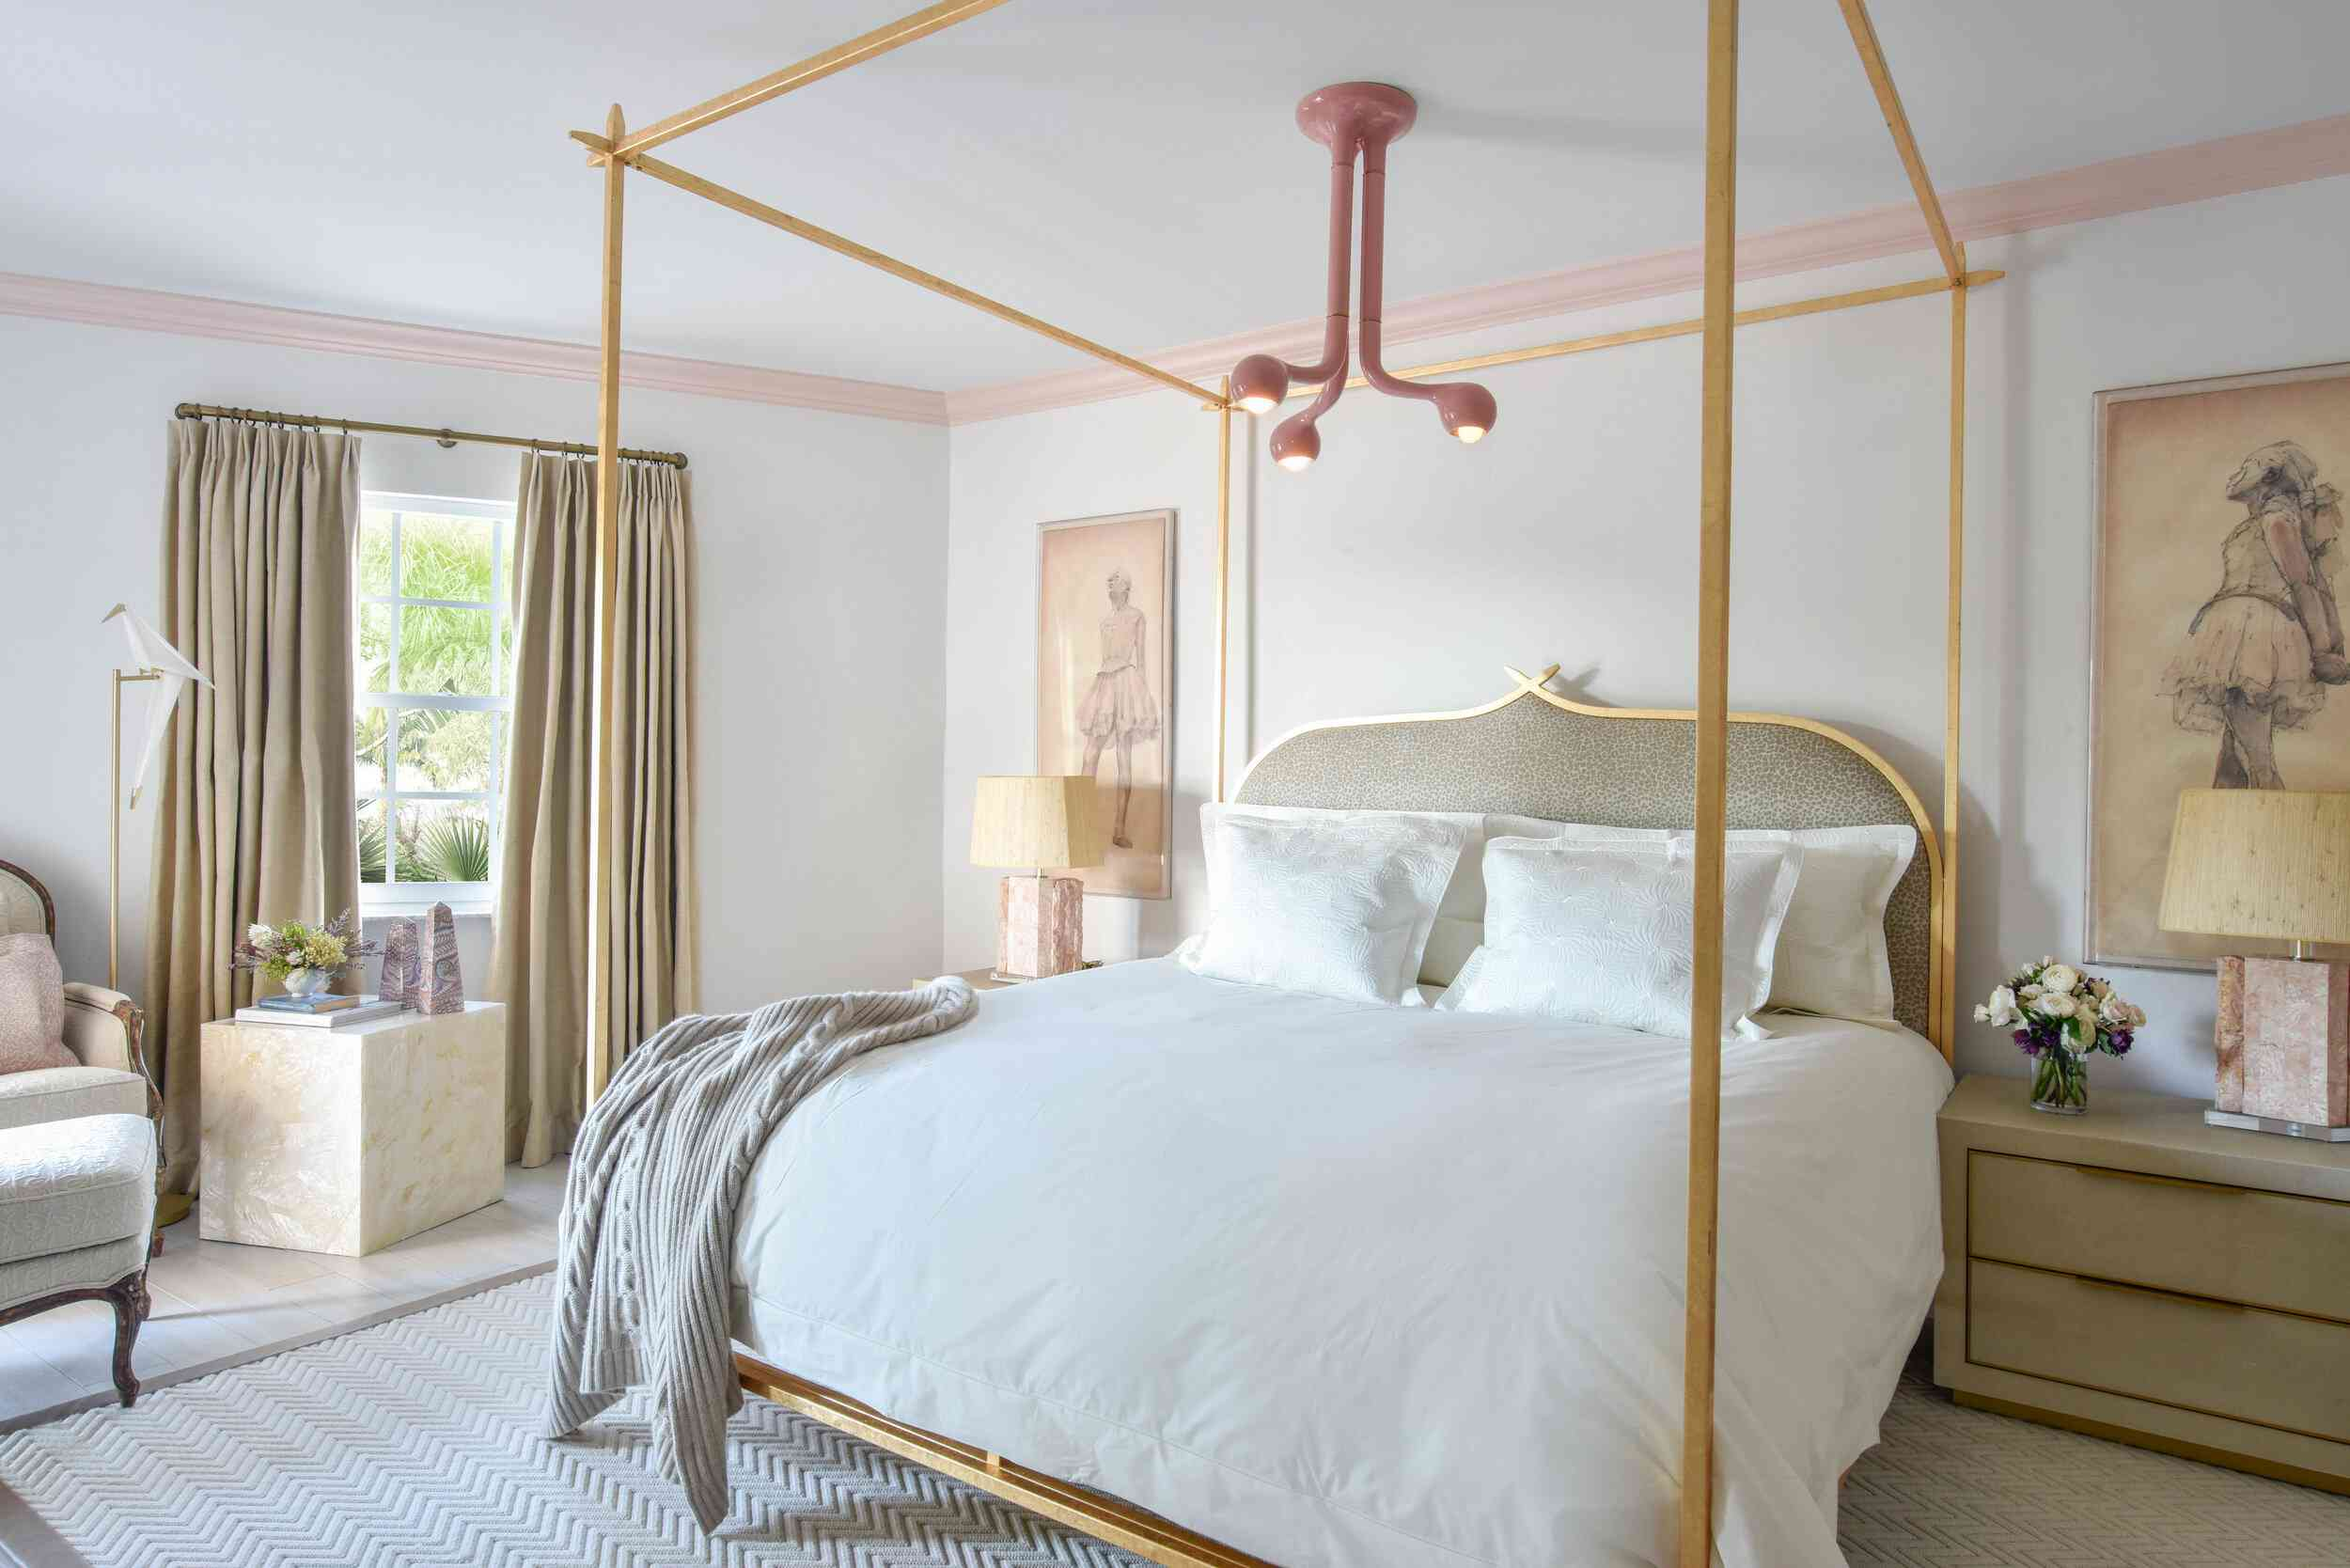 Romantic bedroom with gold and pink accents.